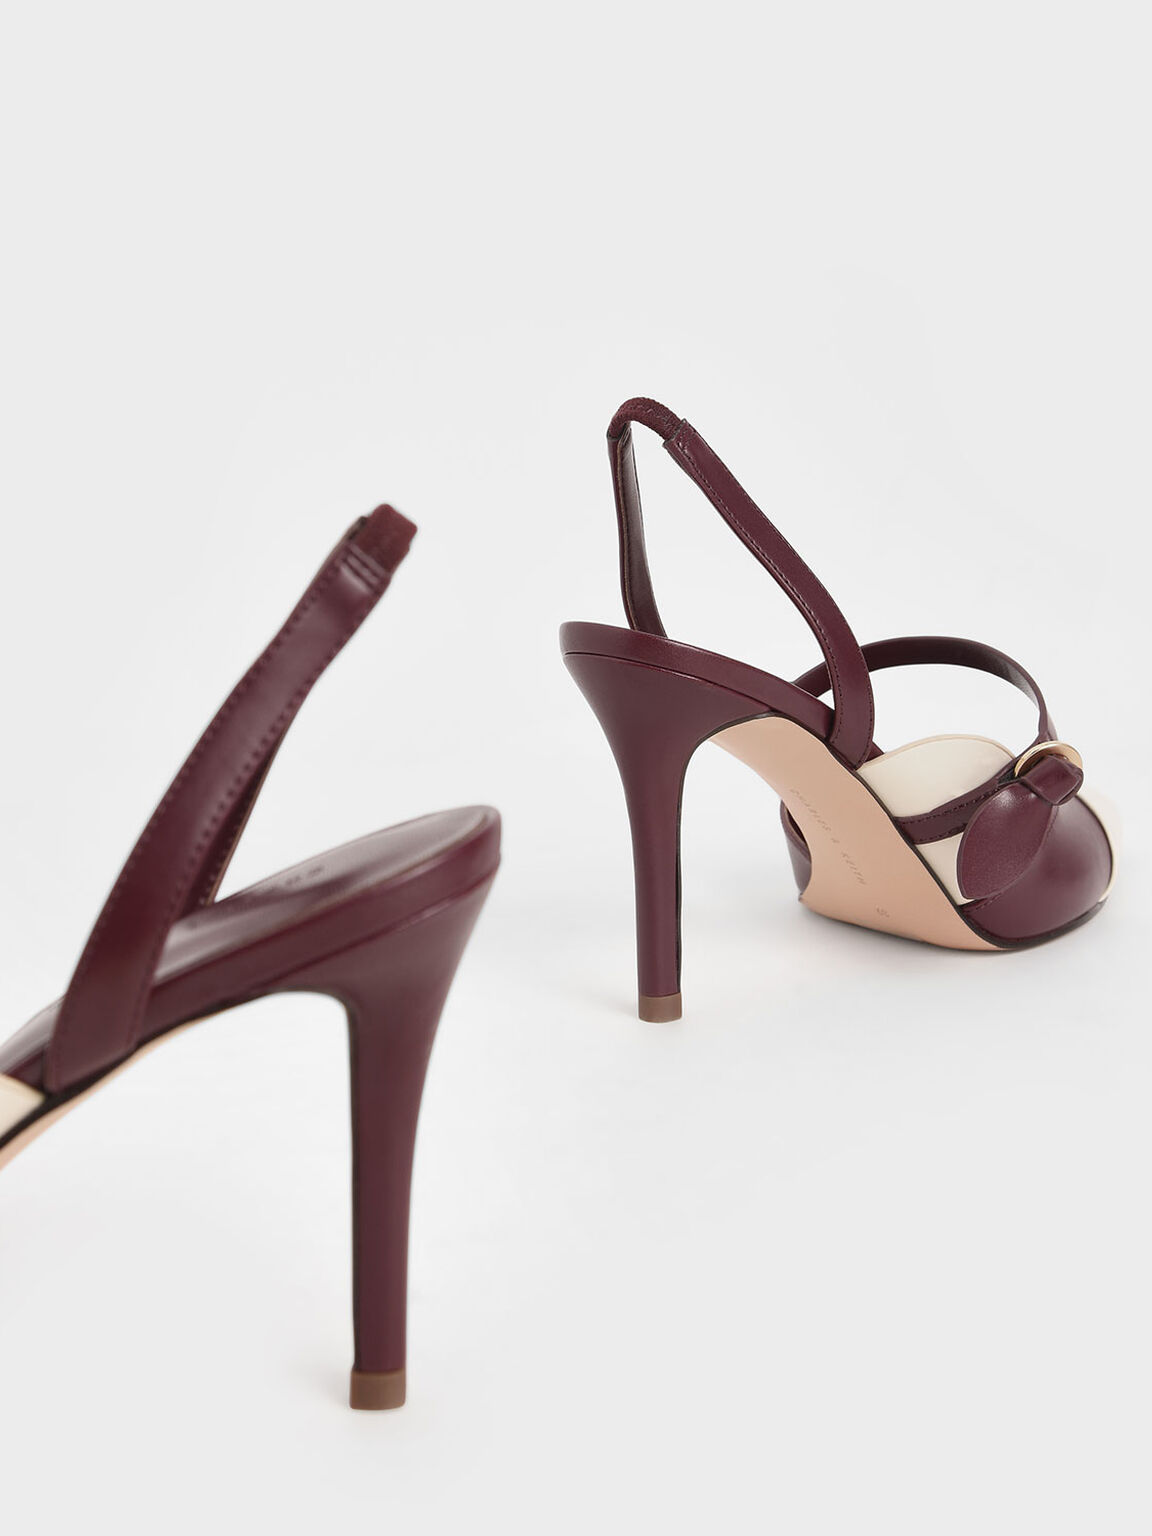 Mary Jane Strap Slingback Pumps, Maroon, hi-res